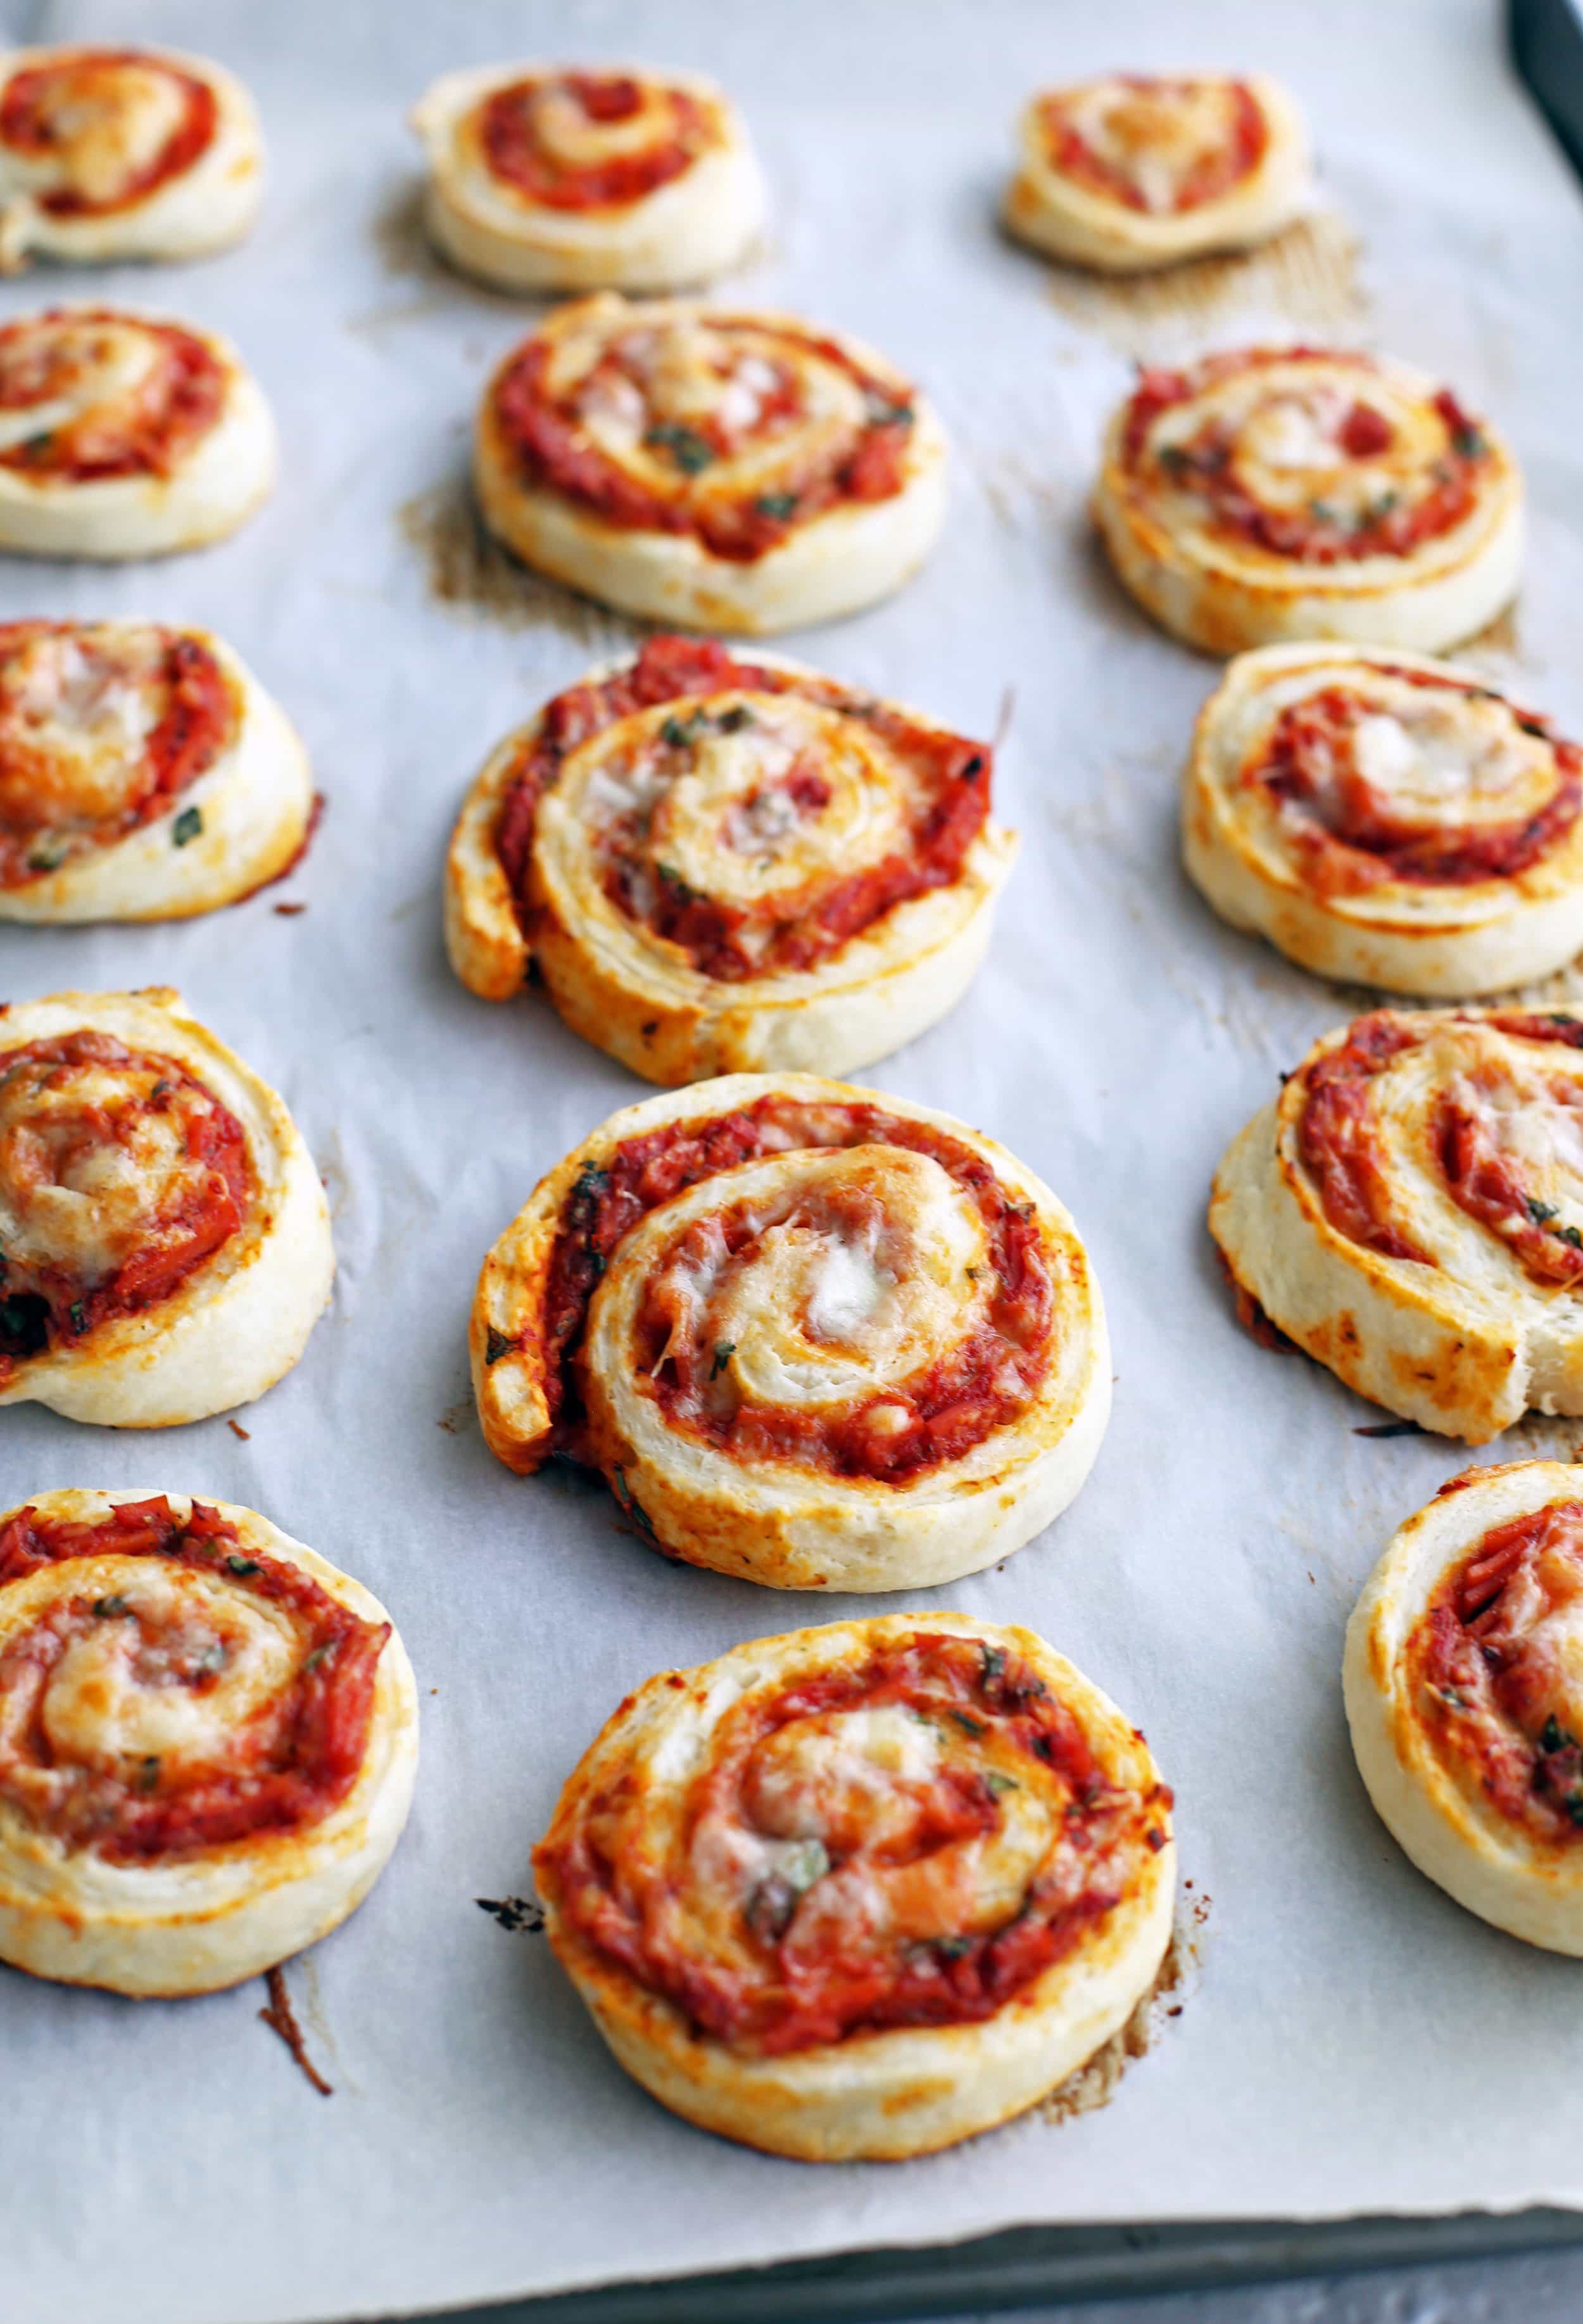 Freshly baked pepperoni cheese pizza rolls on a parchment paper lined baking sheet.